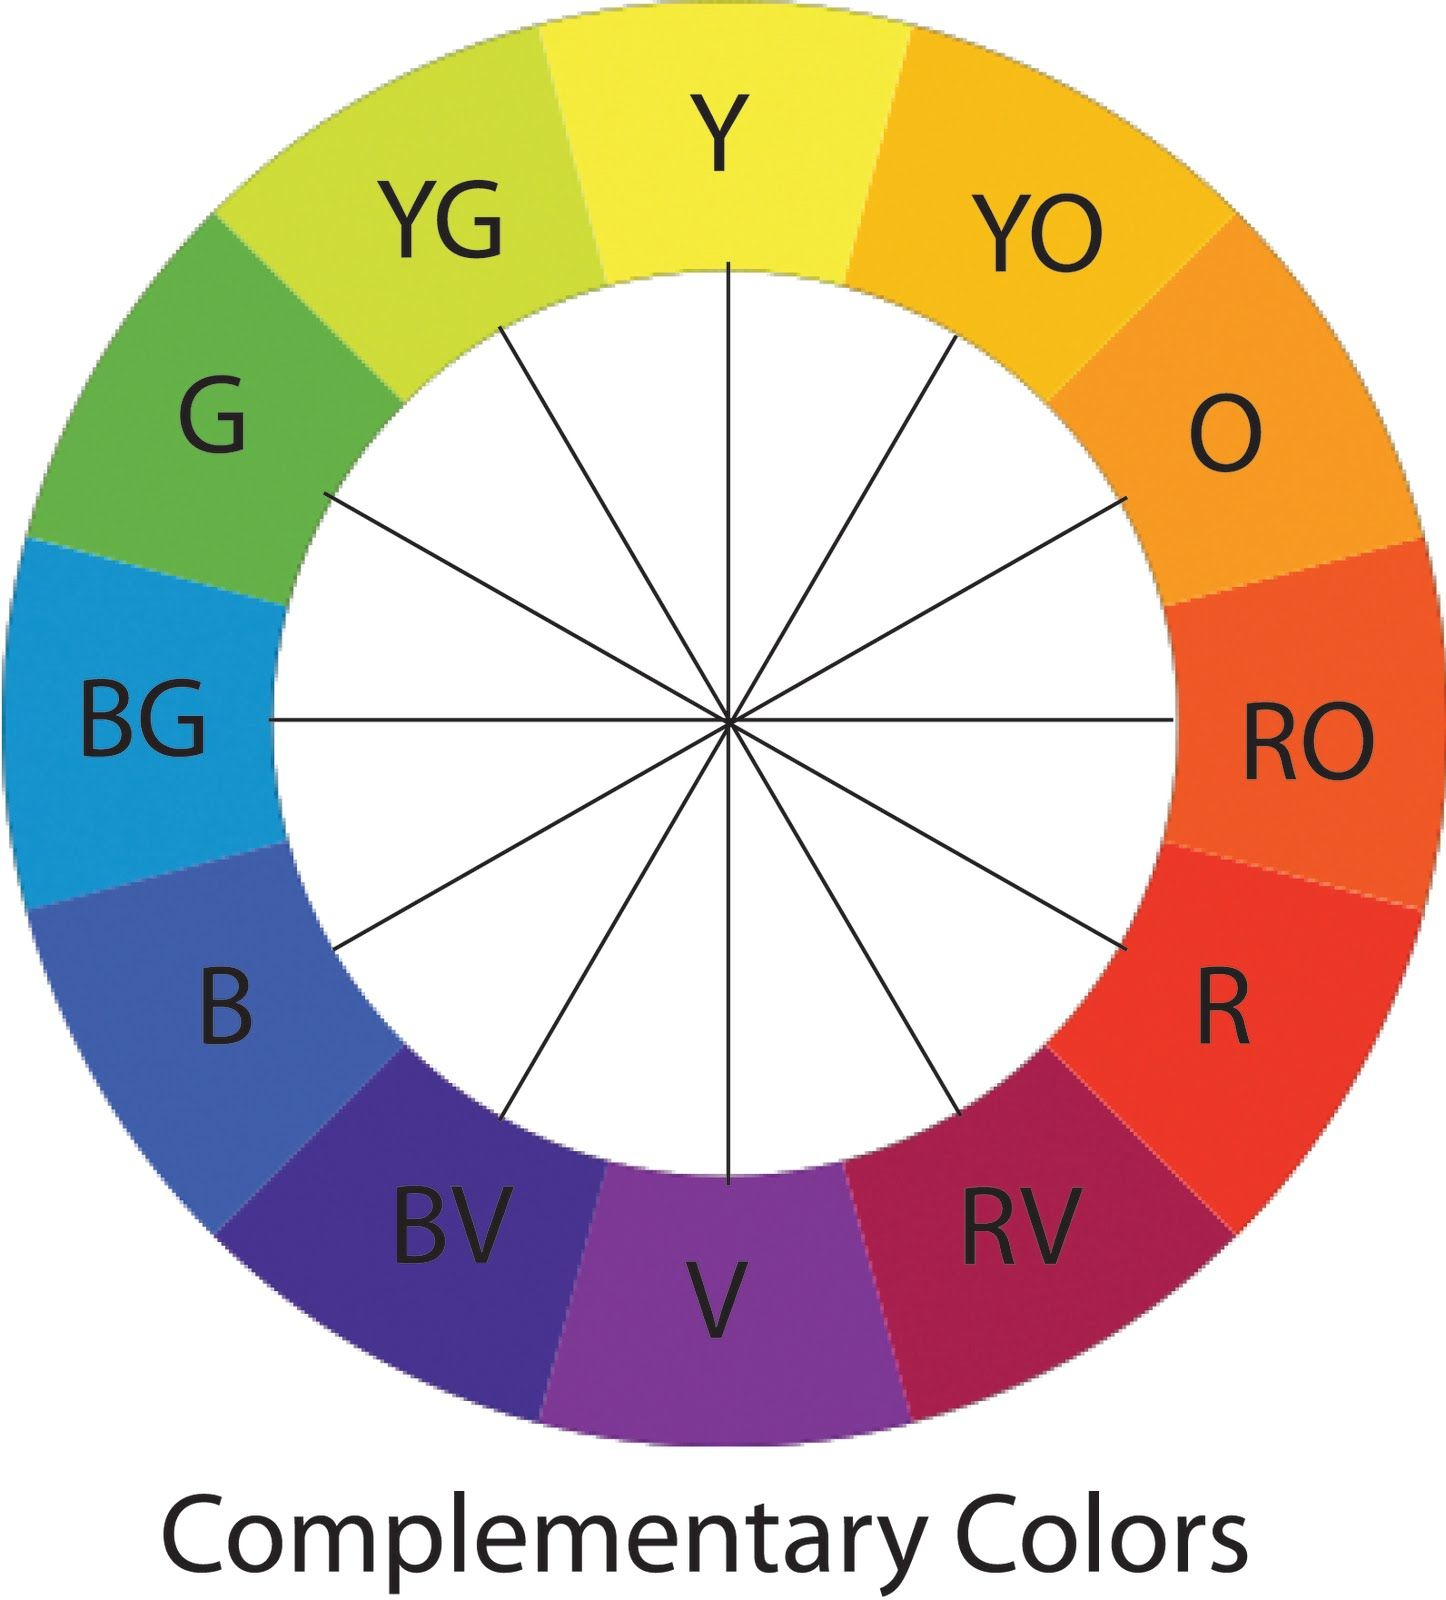 Color wheel complementary colors - Complementary Colors Complementary Colors Are Directly Across From Each Other On The Color